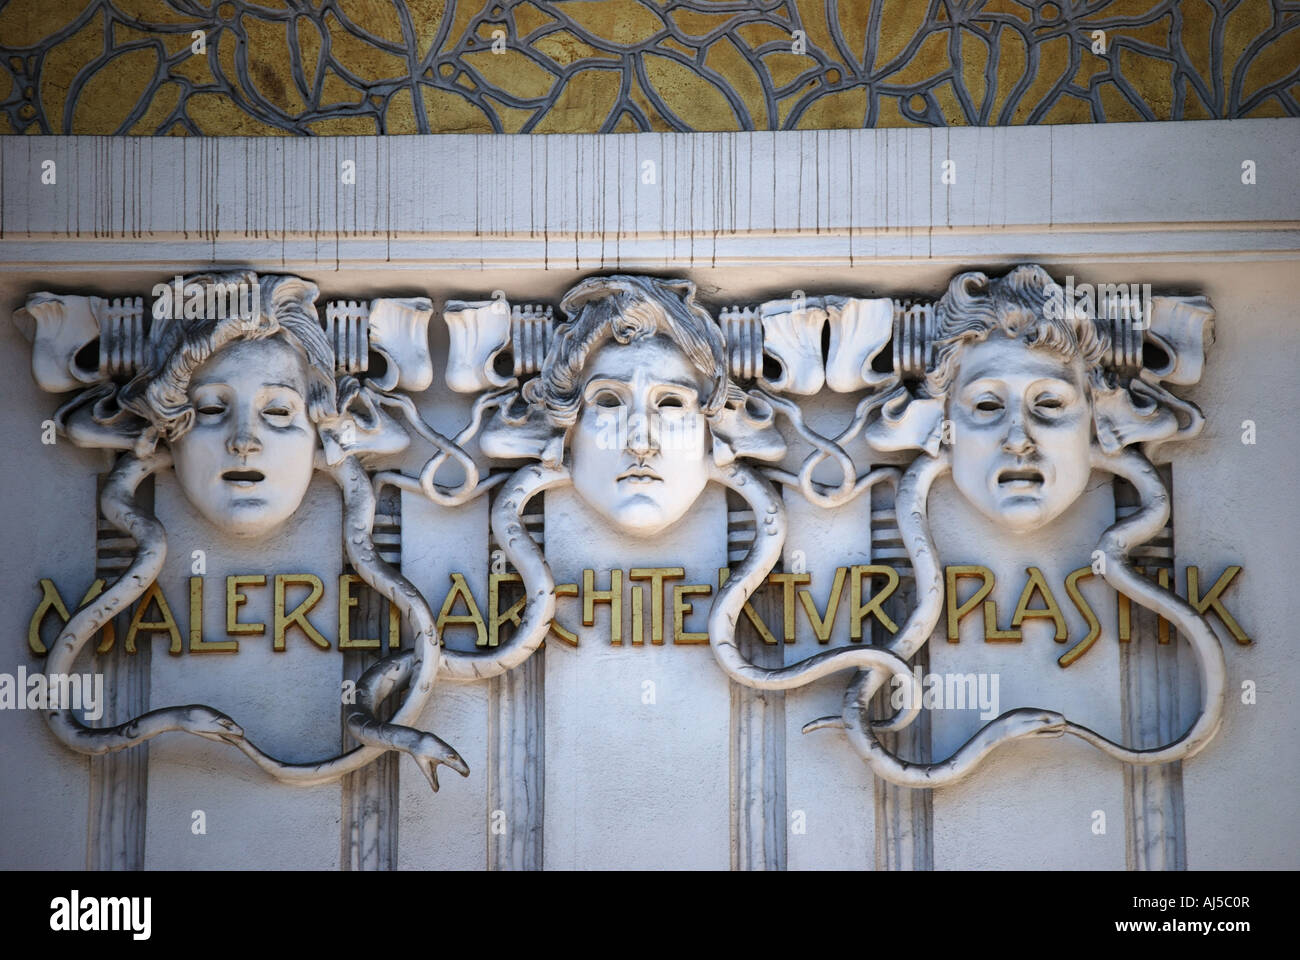 Art Nouveau Secession Building, Vienna, Wein, Republic of Austria - Stock Image